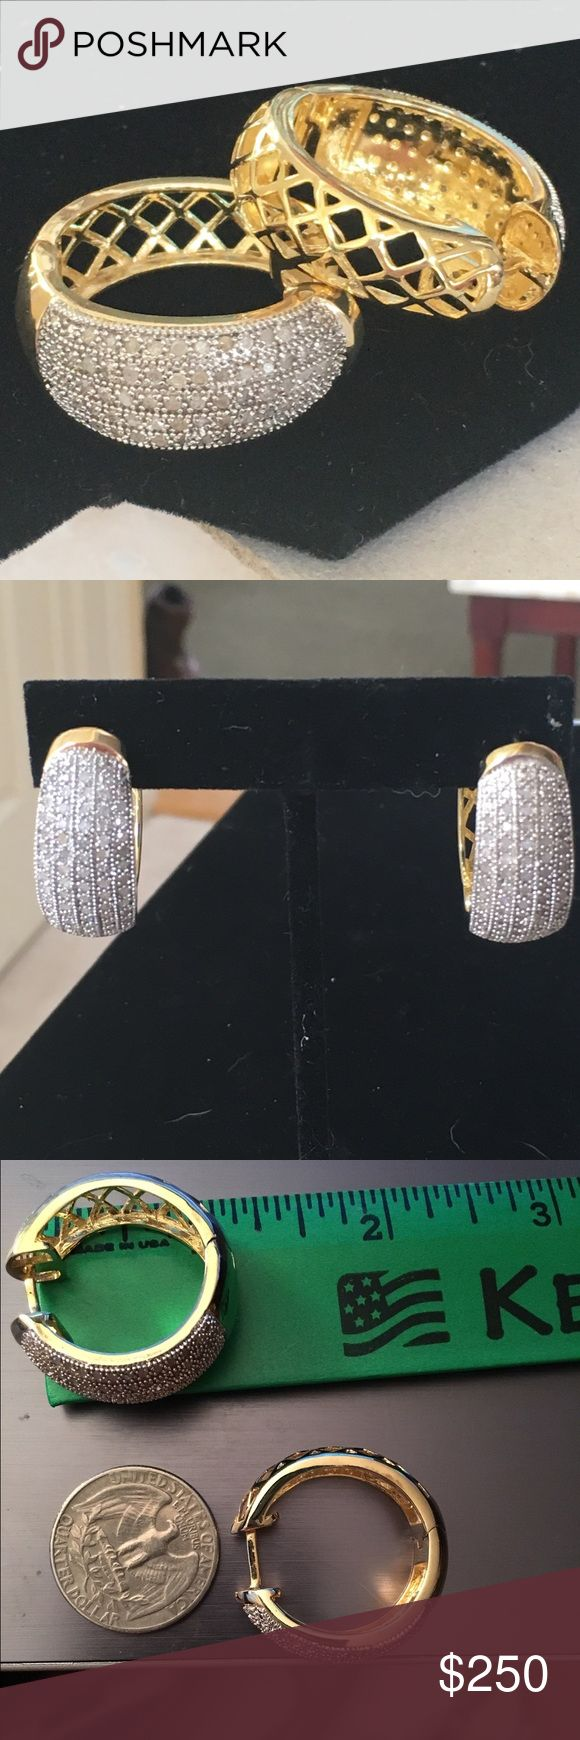 GENUINE DIAMOND 1 CTTW Diamond hoop earrings These are stunning 1 carat diamond earrings. The  setting is 14K gold plating over brass, which makes this an affordable value. There are 108 diamonds. Jewelry Earrings